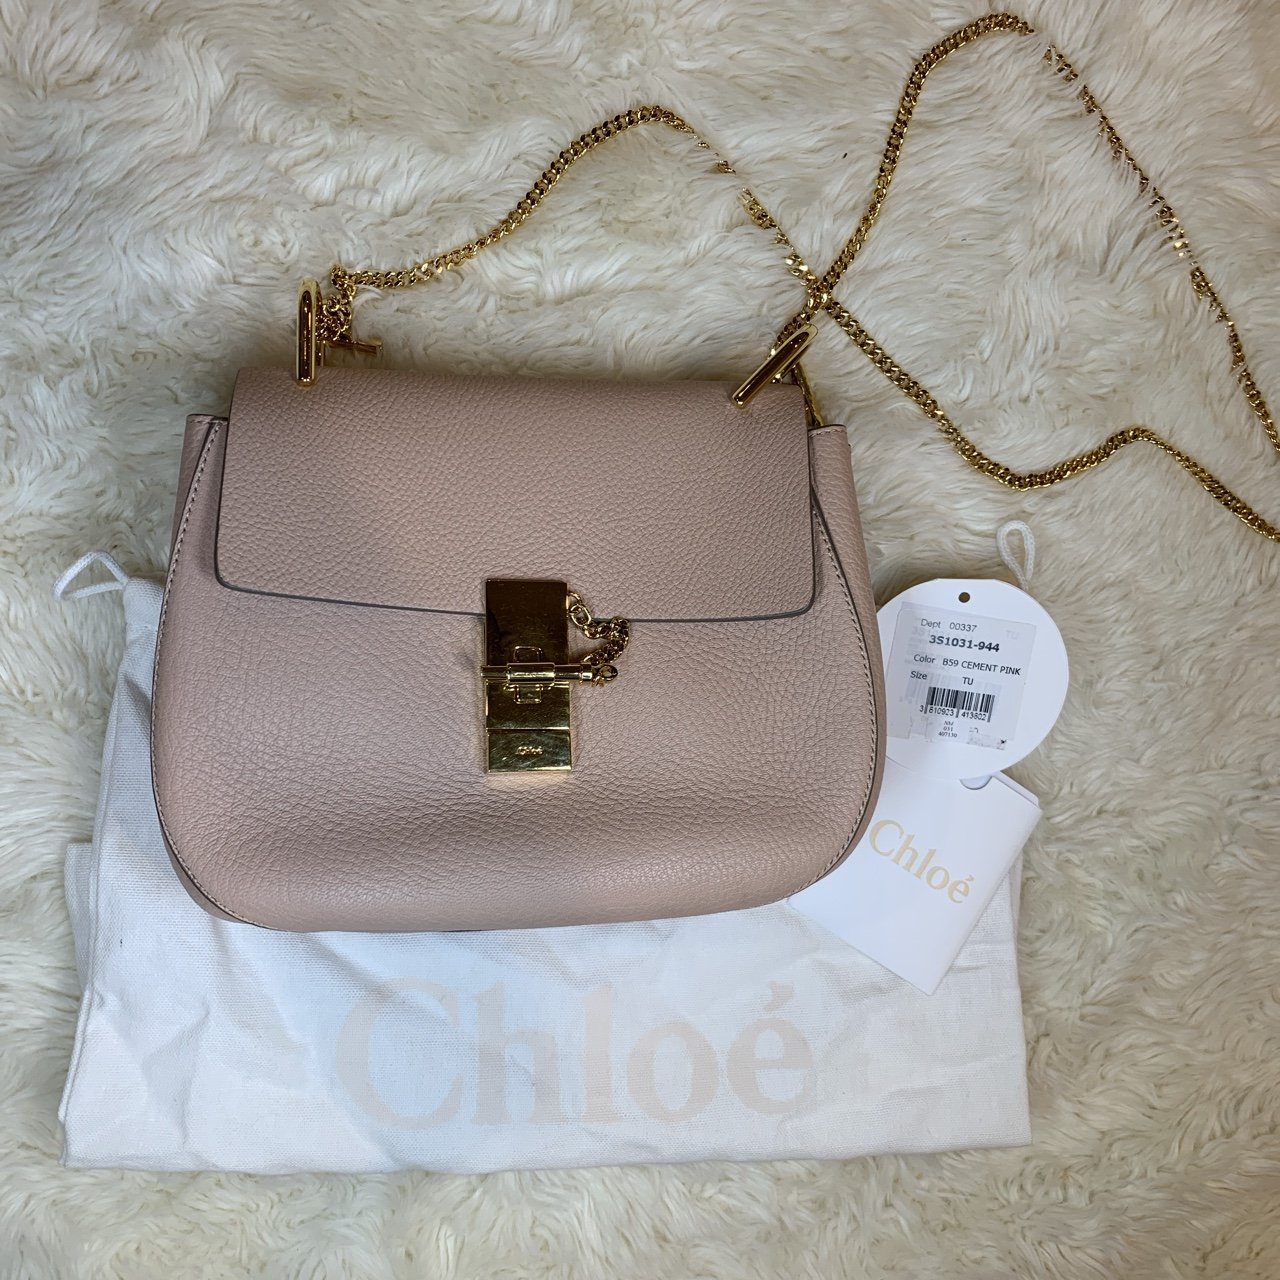 9e9a262654d7 Gently used  chloe drew shoulder bag in cement pink. This is - Depop